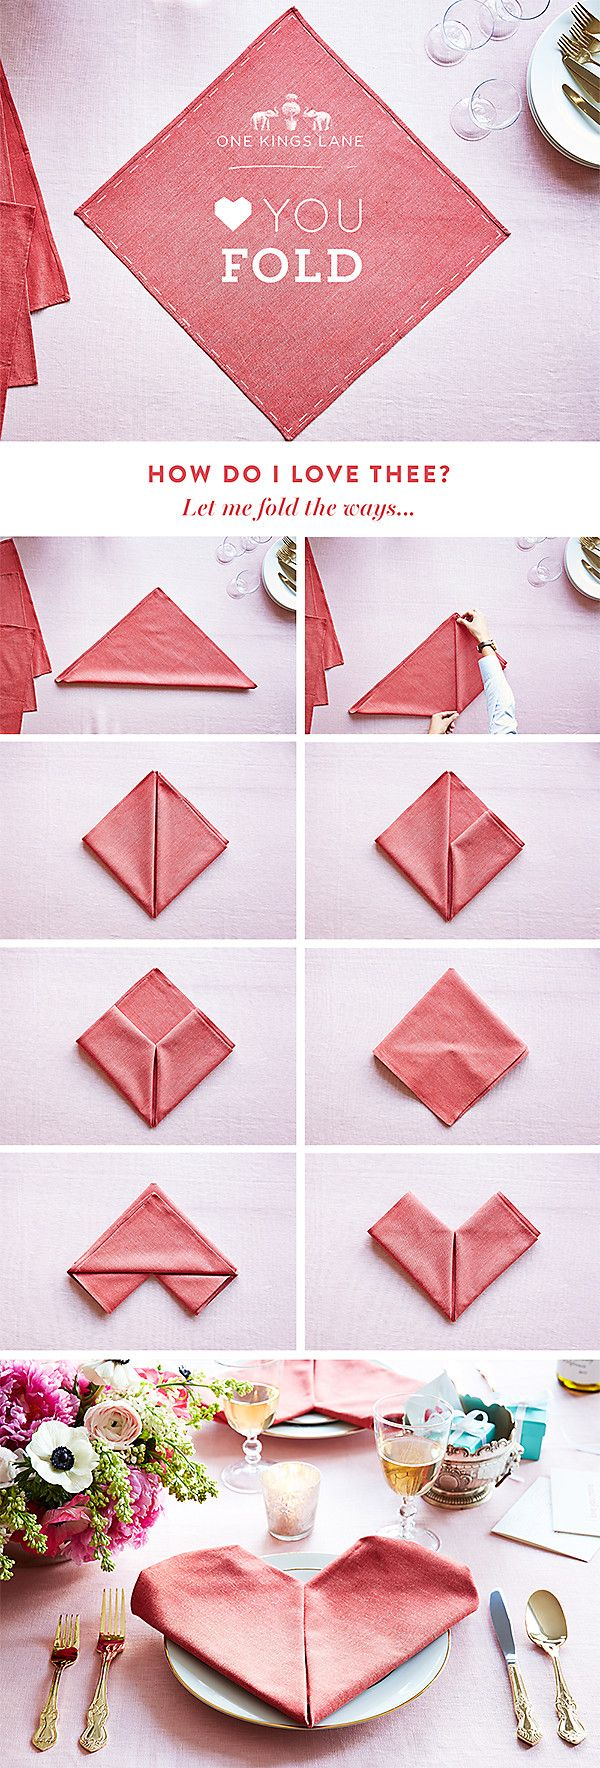 How To Make Table Napkin Designs napkin folding techniques folding napkinseasy Upgrade Your Valentines Day Table With This Fun Fold How To Fold Napkinsfolding